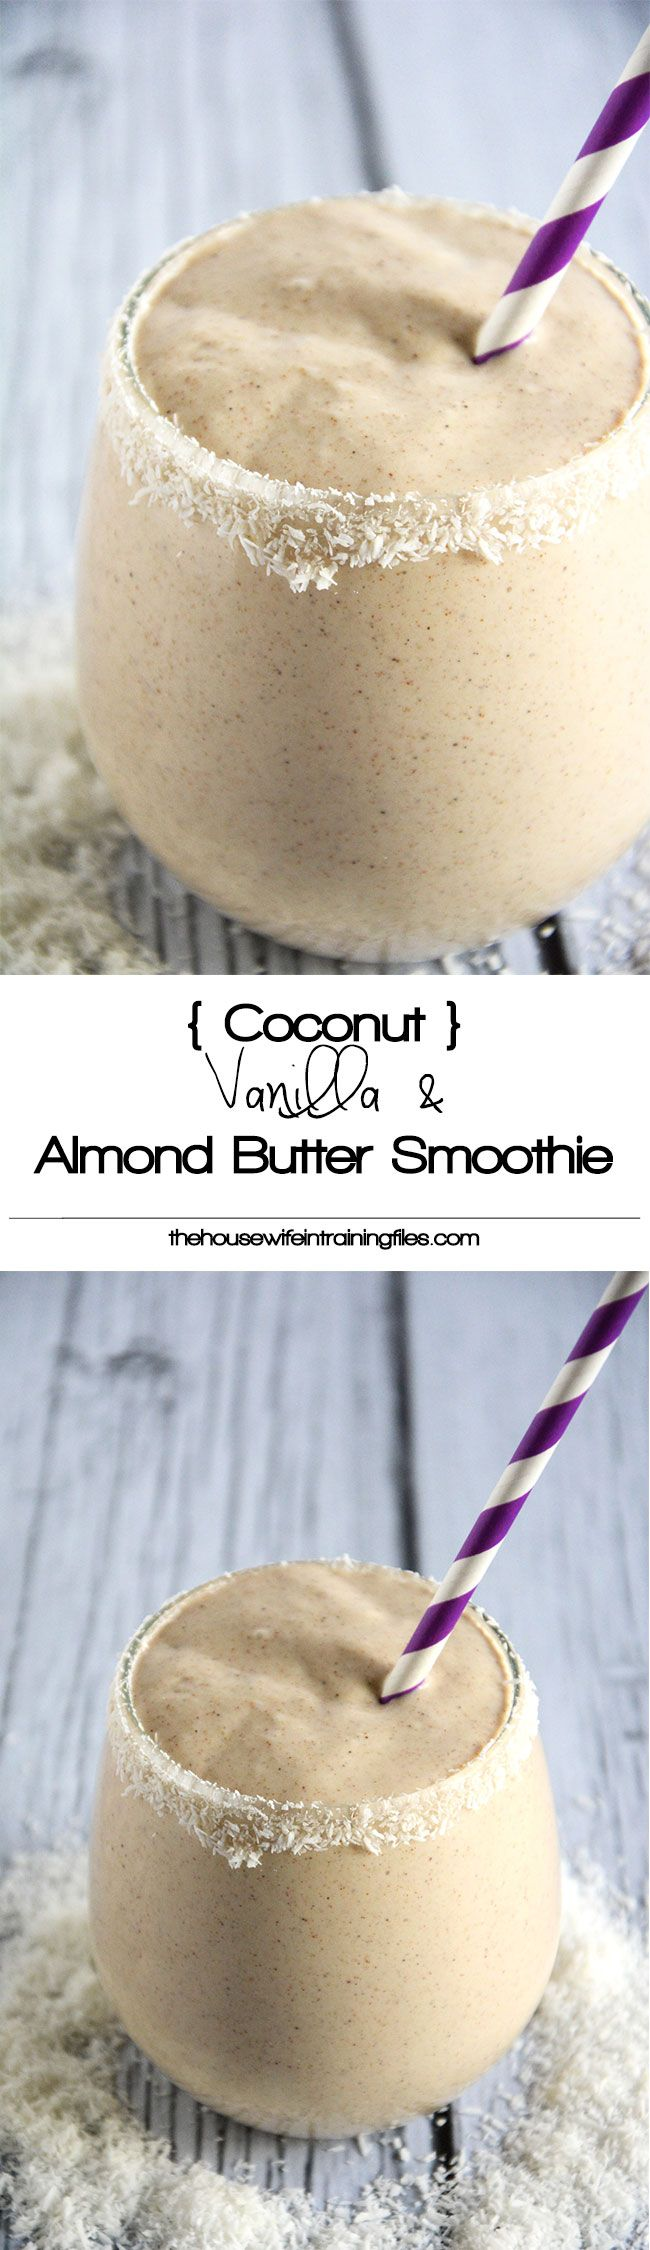 A velvety smoothie made with coconut milk, vanilla, almond butter and sweetened with dates! #